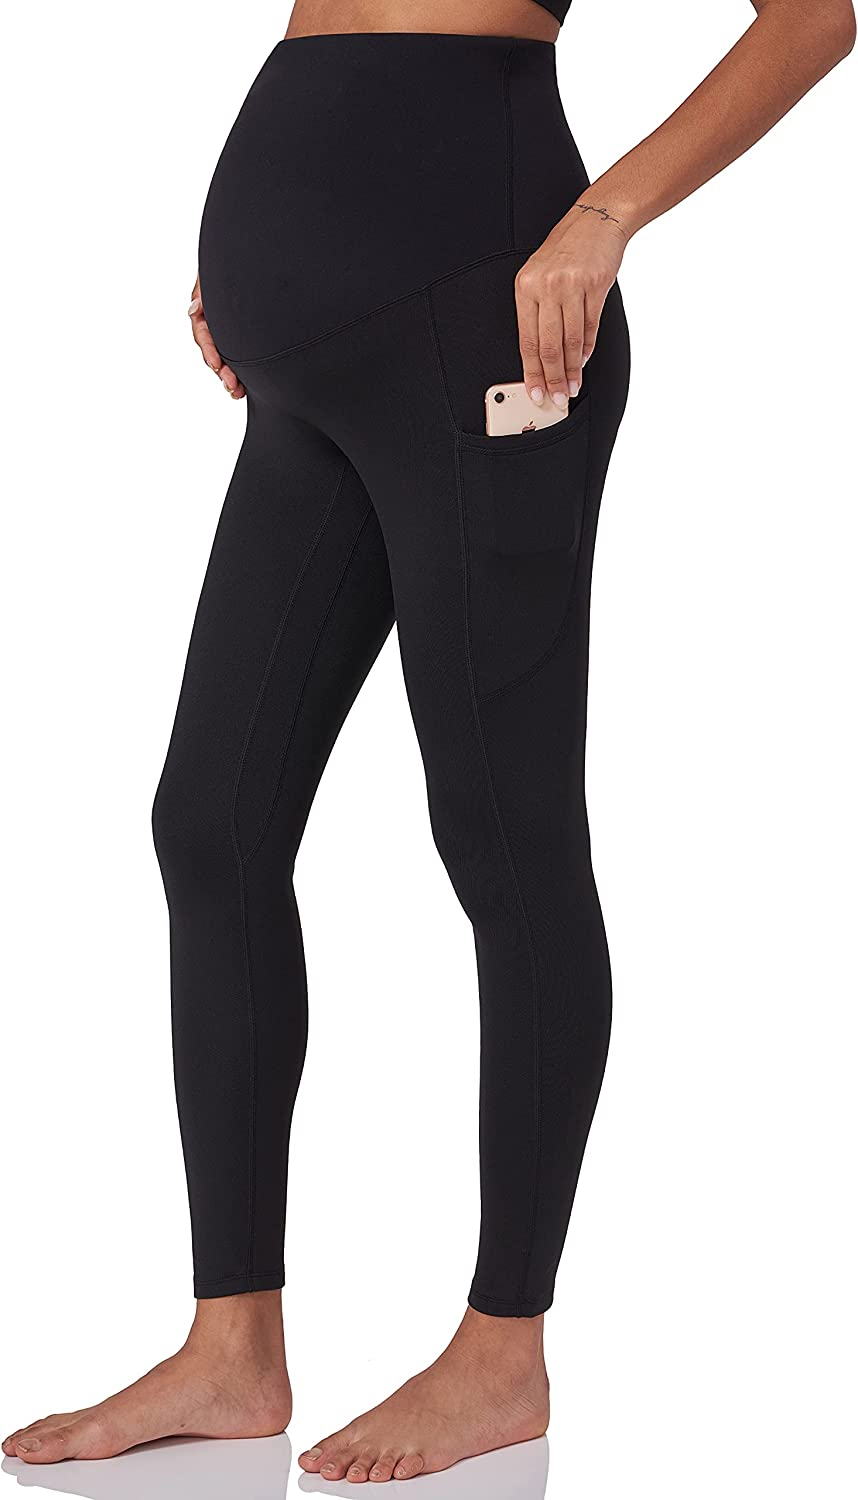 POSHDIVAH Women's Maternity Fleece Lined Leggings Over The Belly Pregnancy Winter Warm Yoga Workout Active Pants with Pockets